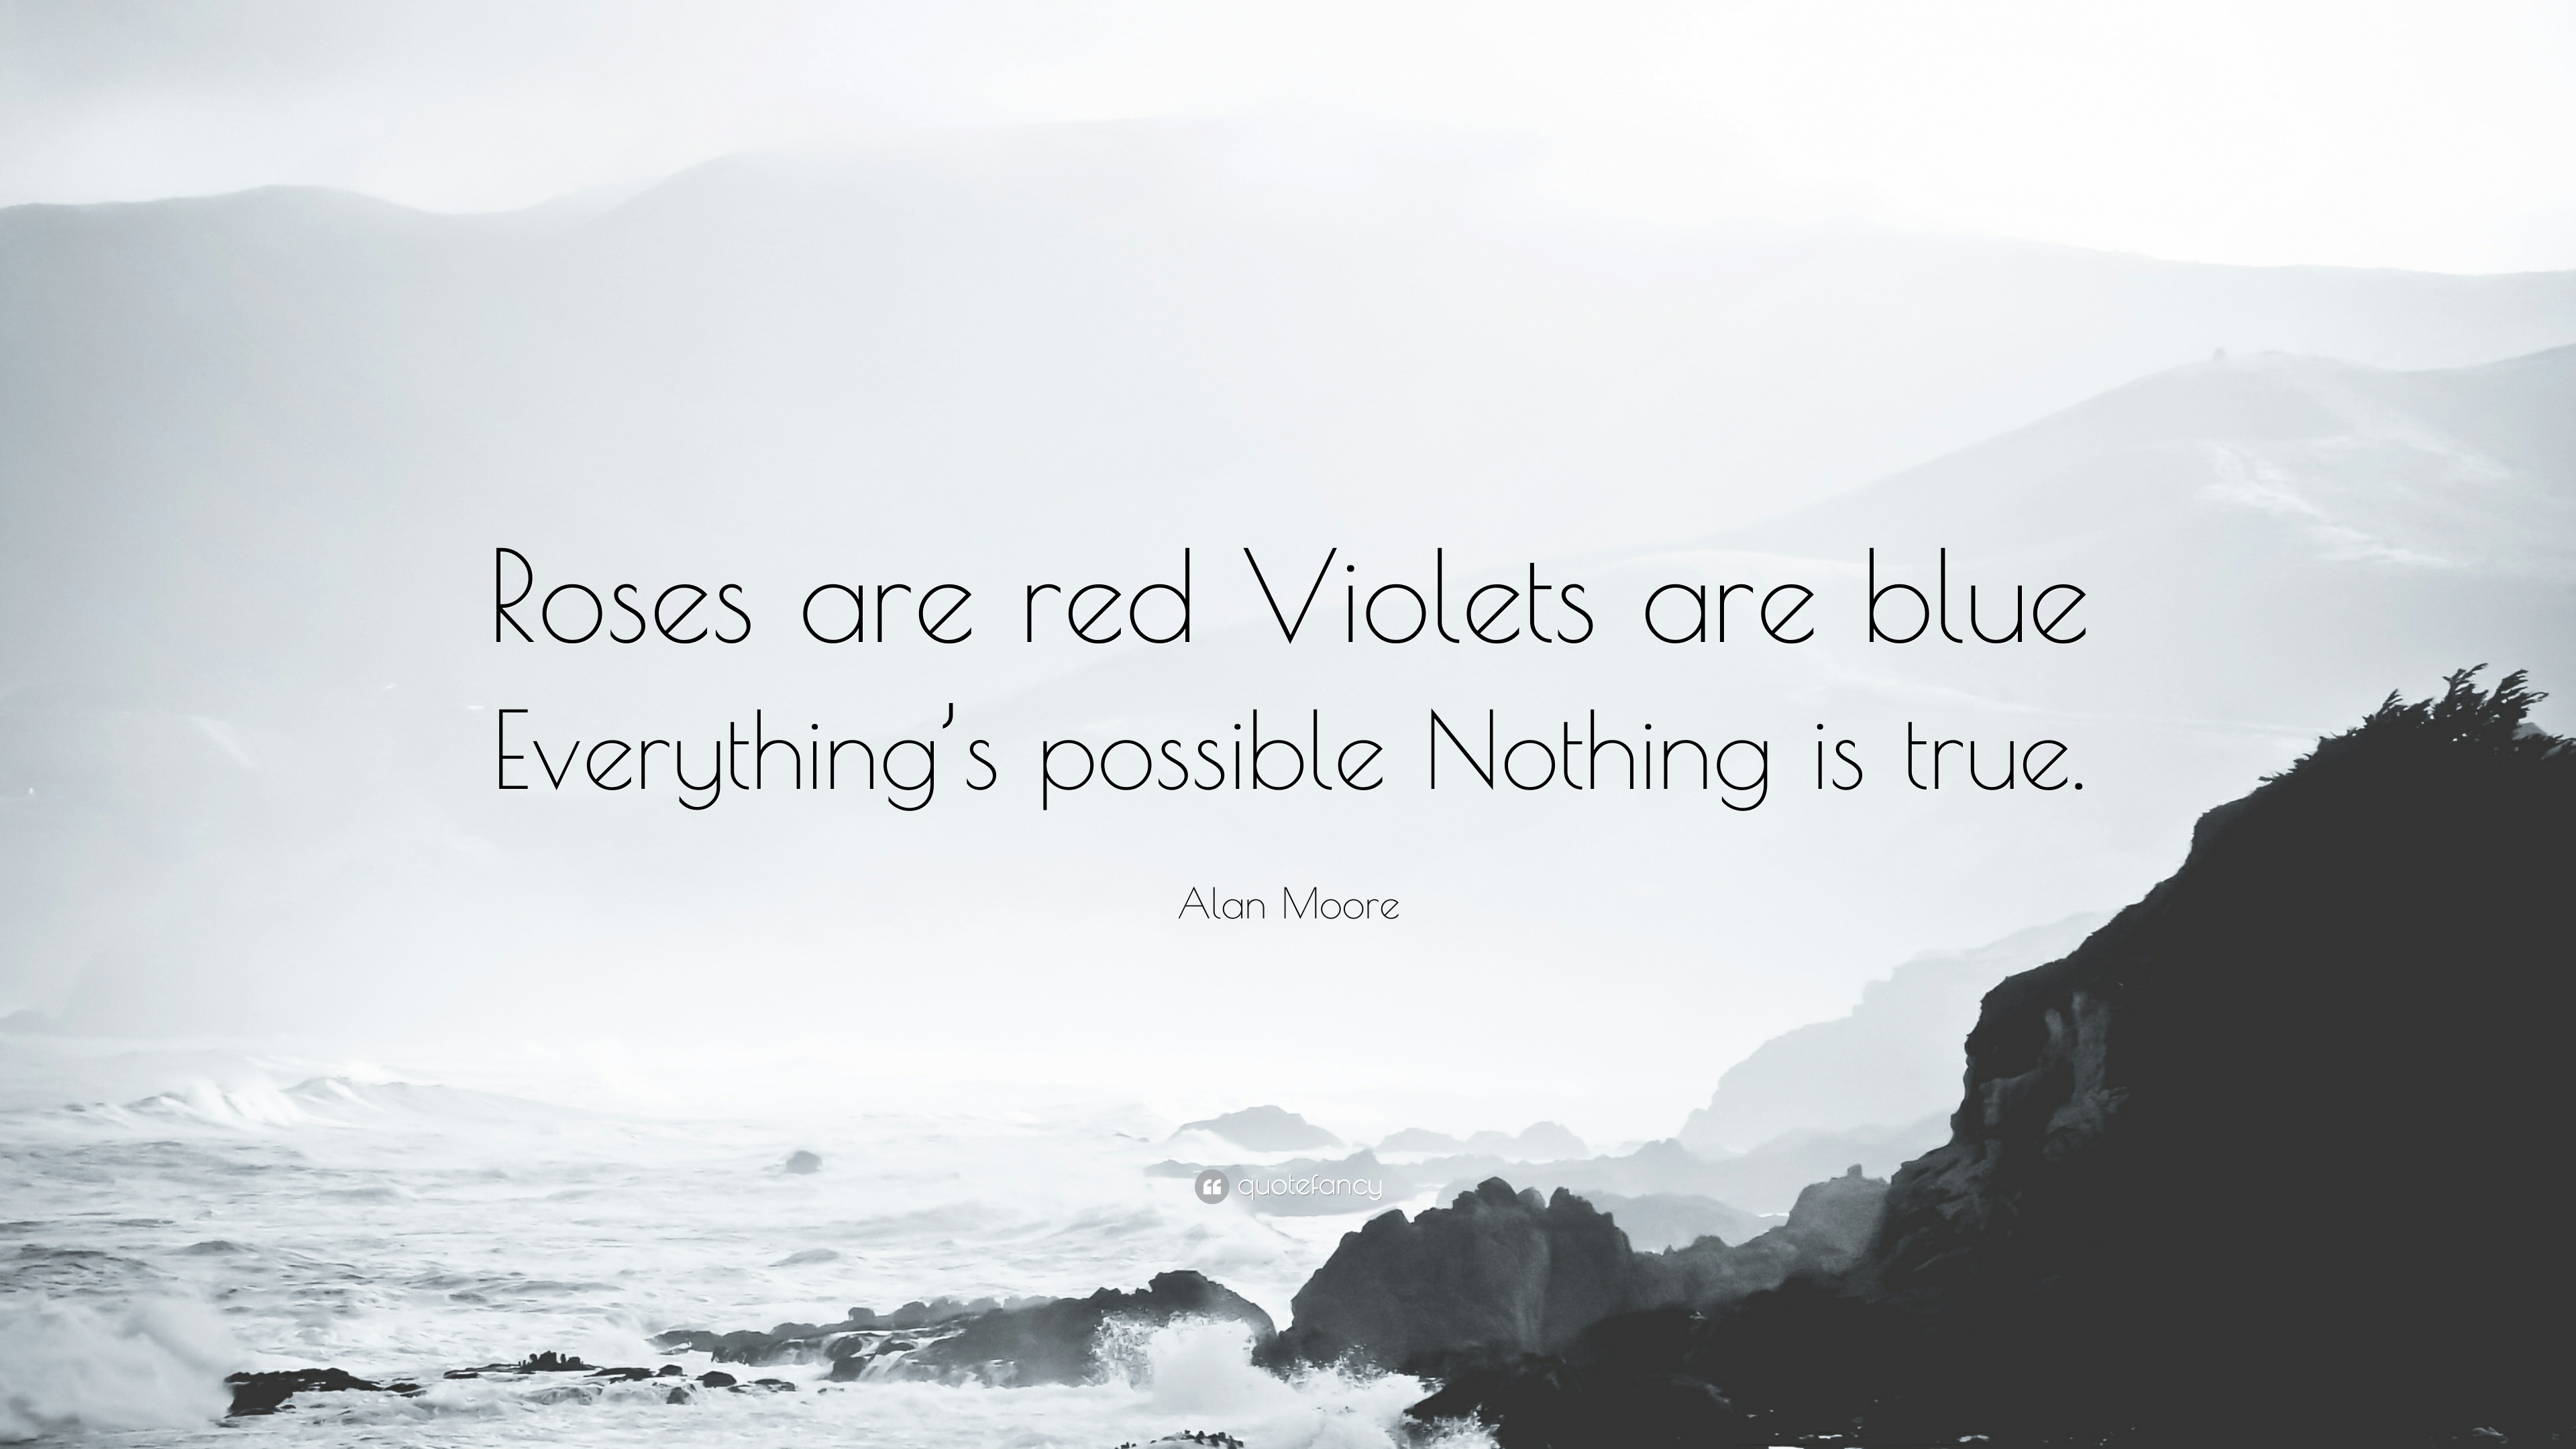 alan moore quote roses are red violets are blue everythings possible nothing is true